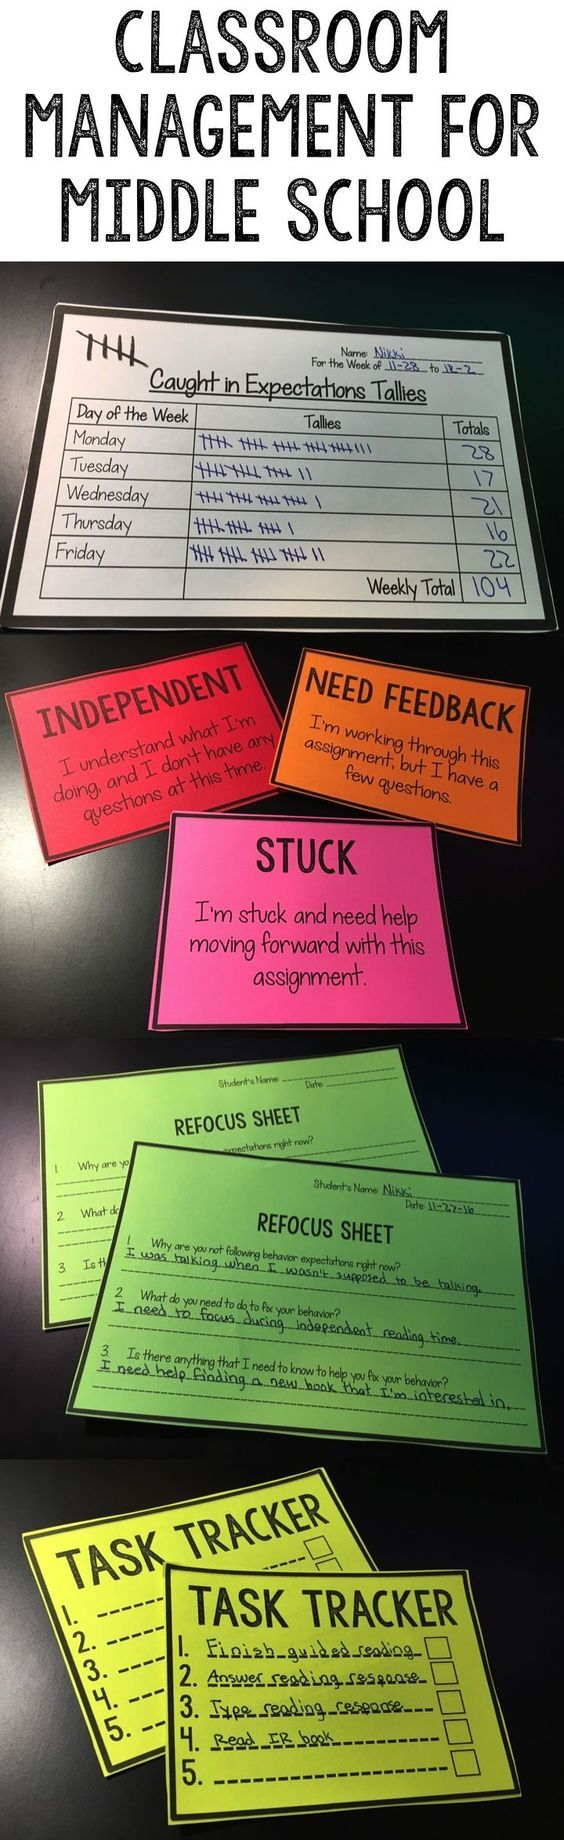 Classroom Management System for Middle School: Recognize the Positive